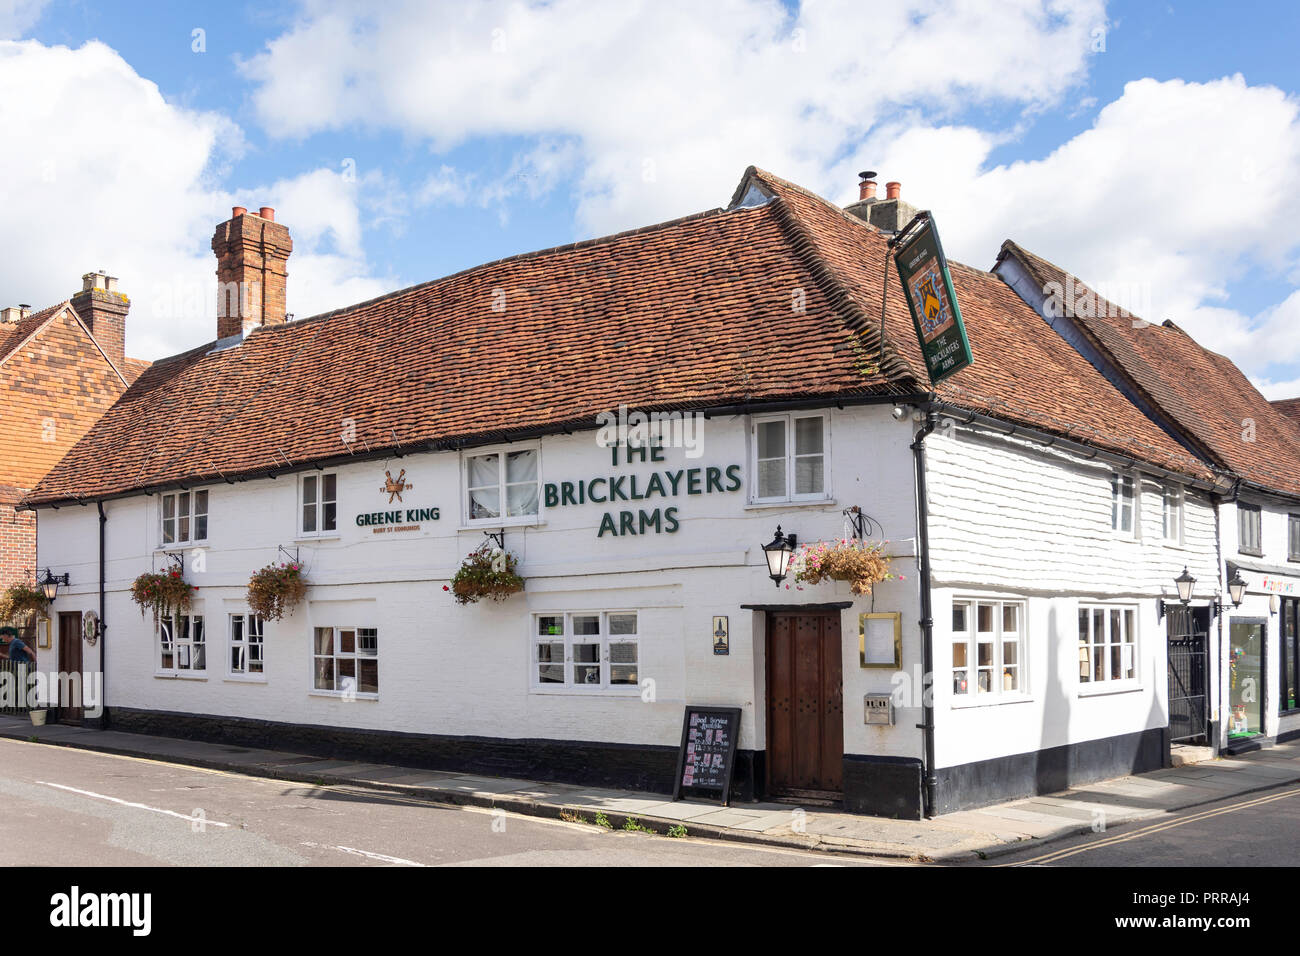 17th century The Bricklayers Arms, Wool Lane, Midhurst, West Sussex, England, United Kingdom - Stock Image